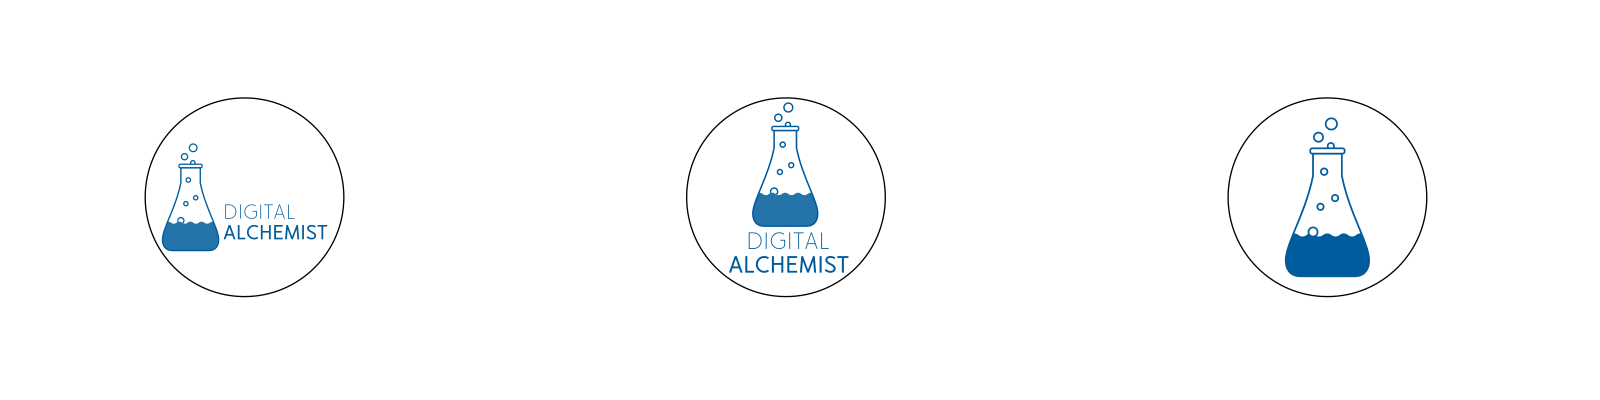 digital alchemist brand logo design variations